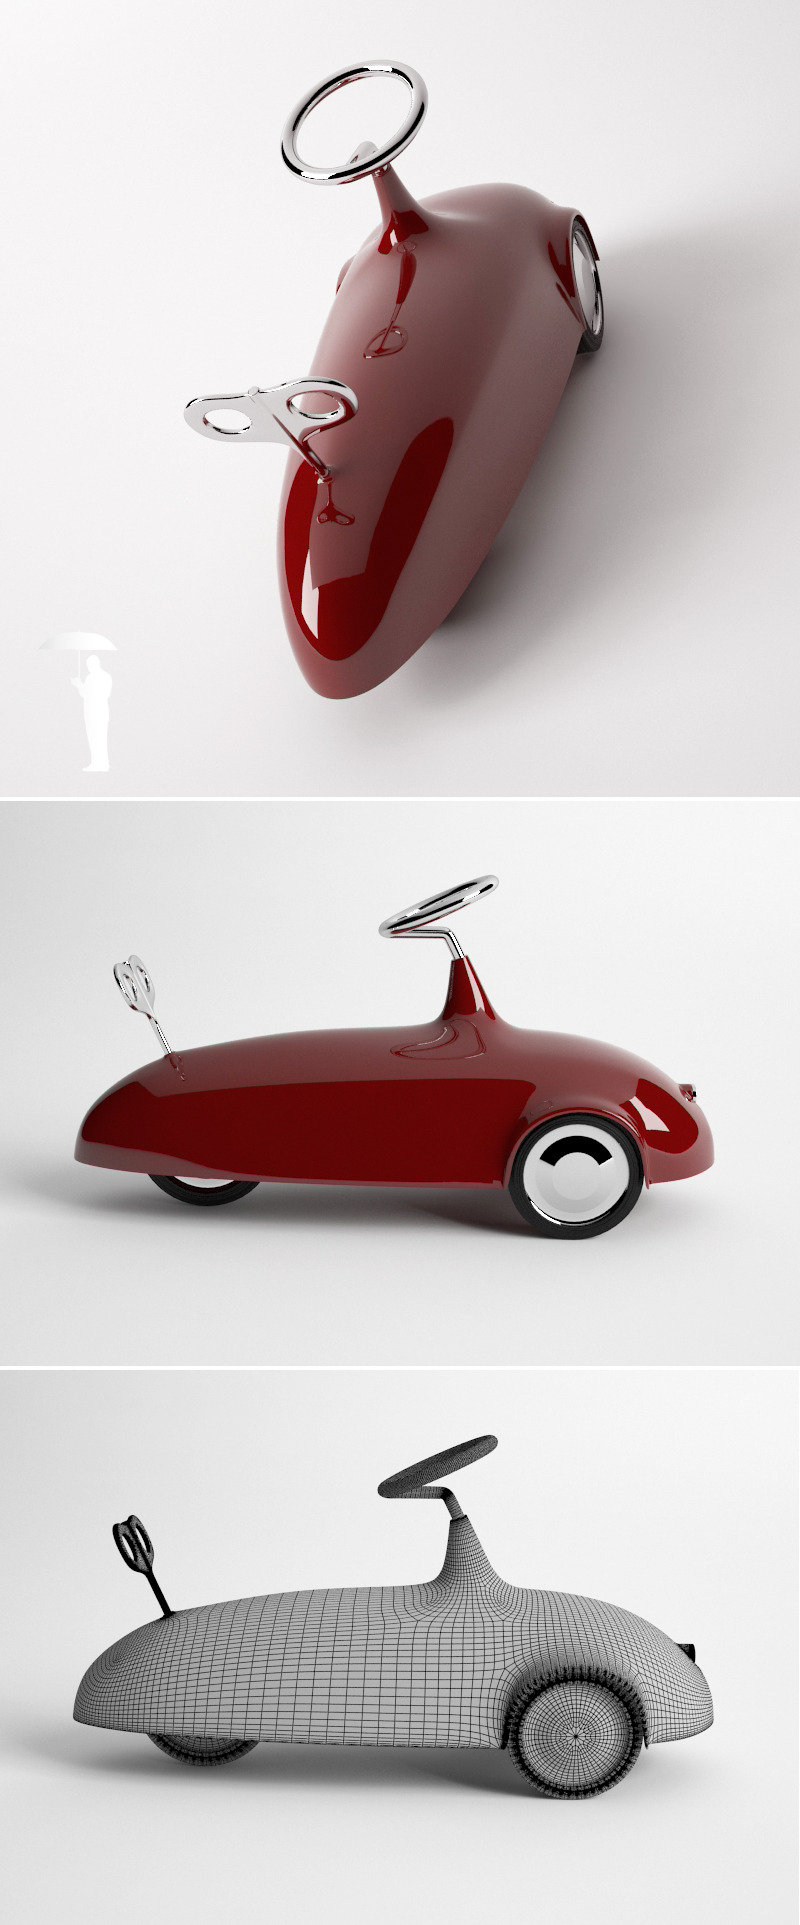 Konstantin B toy car